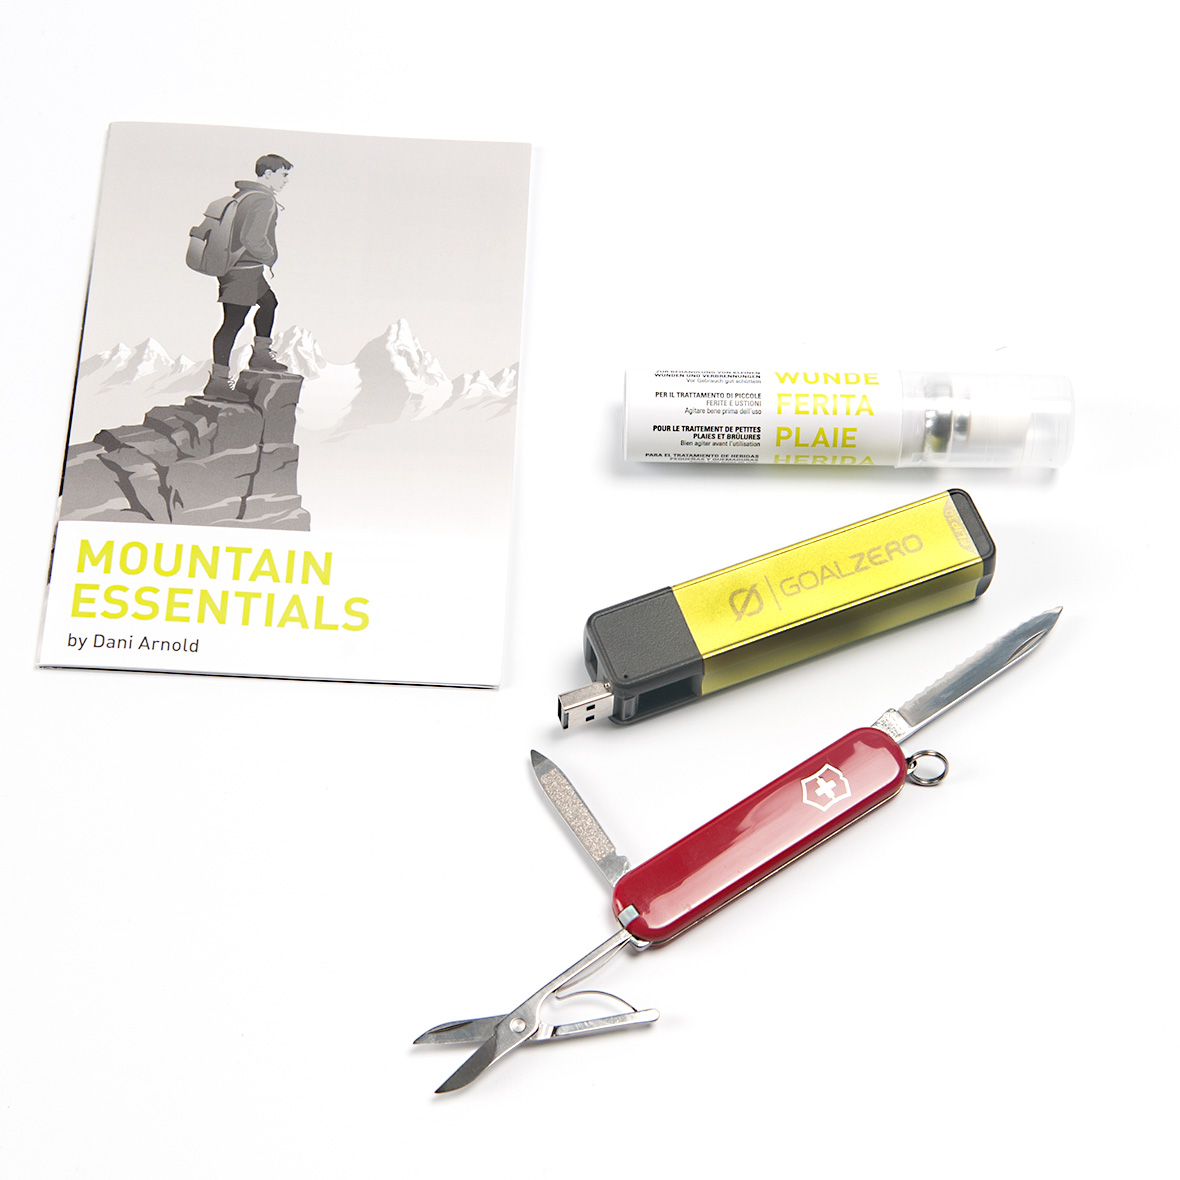 Mountain Essentials by Dani Arnold, SAC